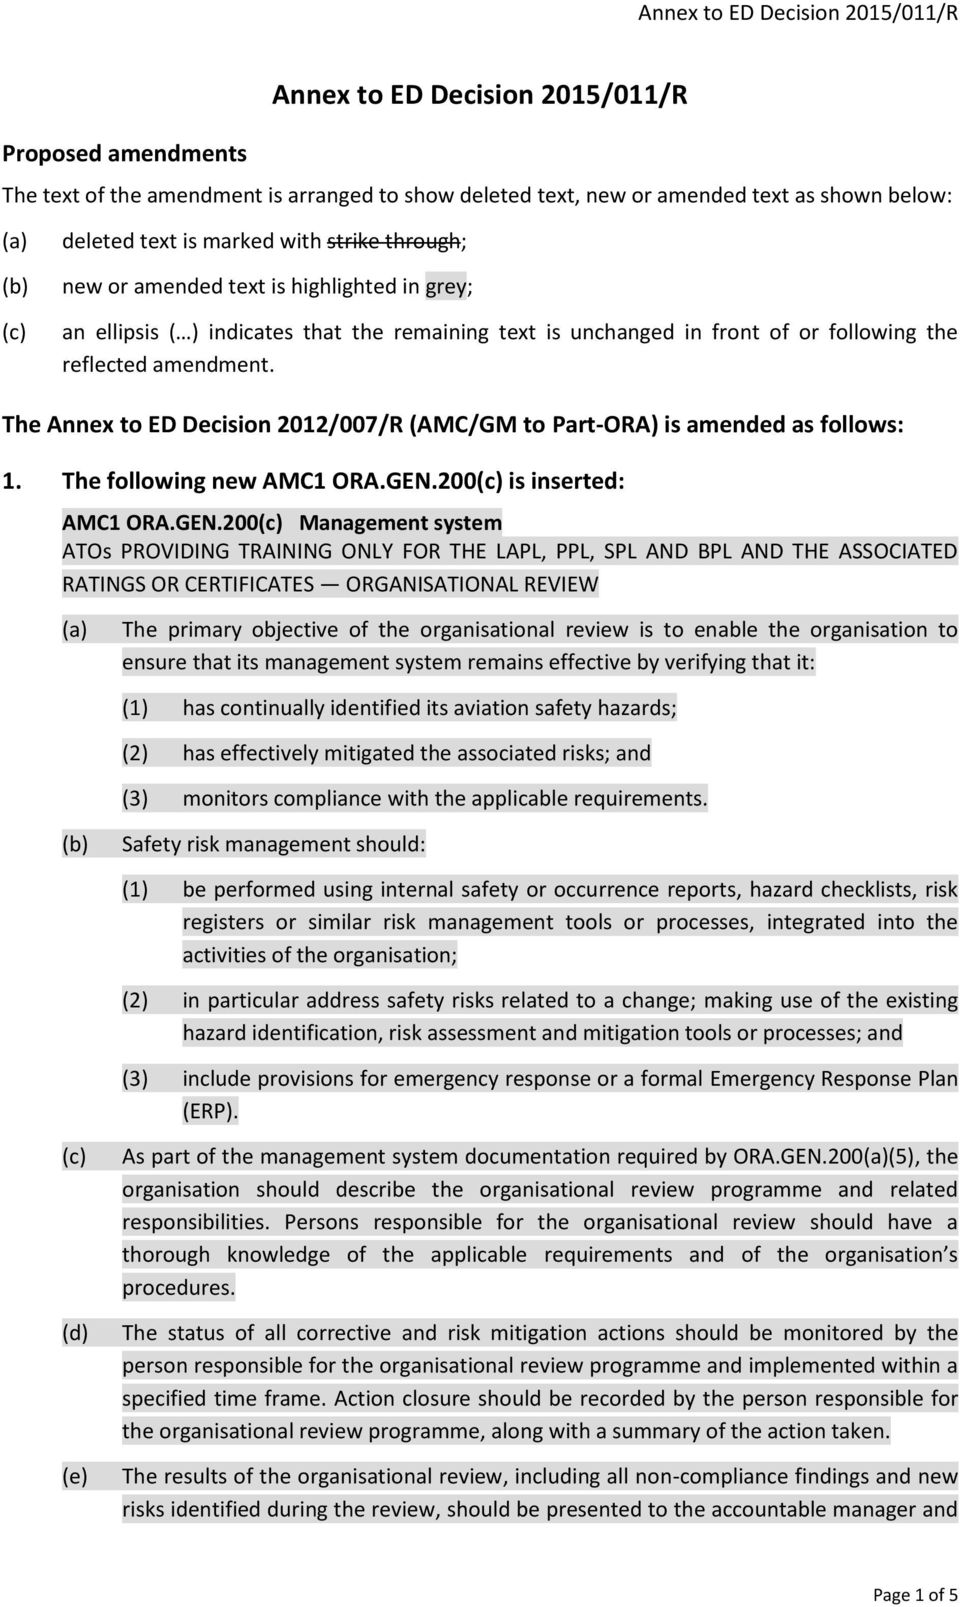 The Annex to ED Decision 2012/007/R (AMC/GM to Part-ORA) is amended as follows: 1. The following new AMC1 ORA.GEN.